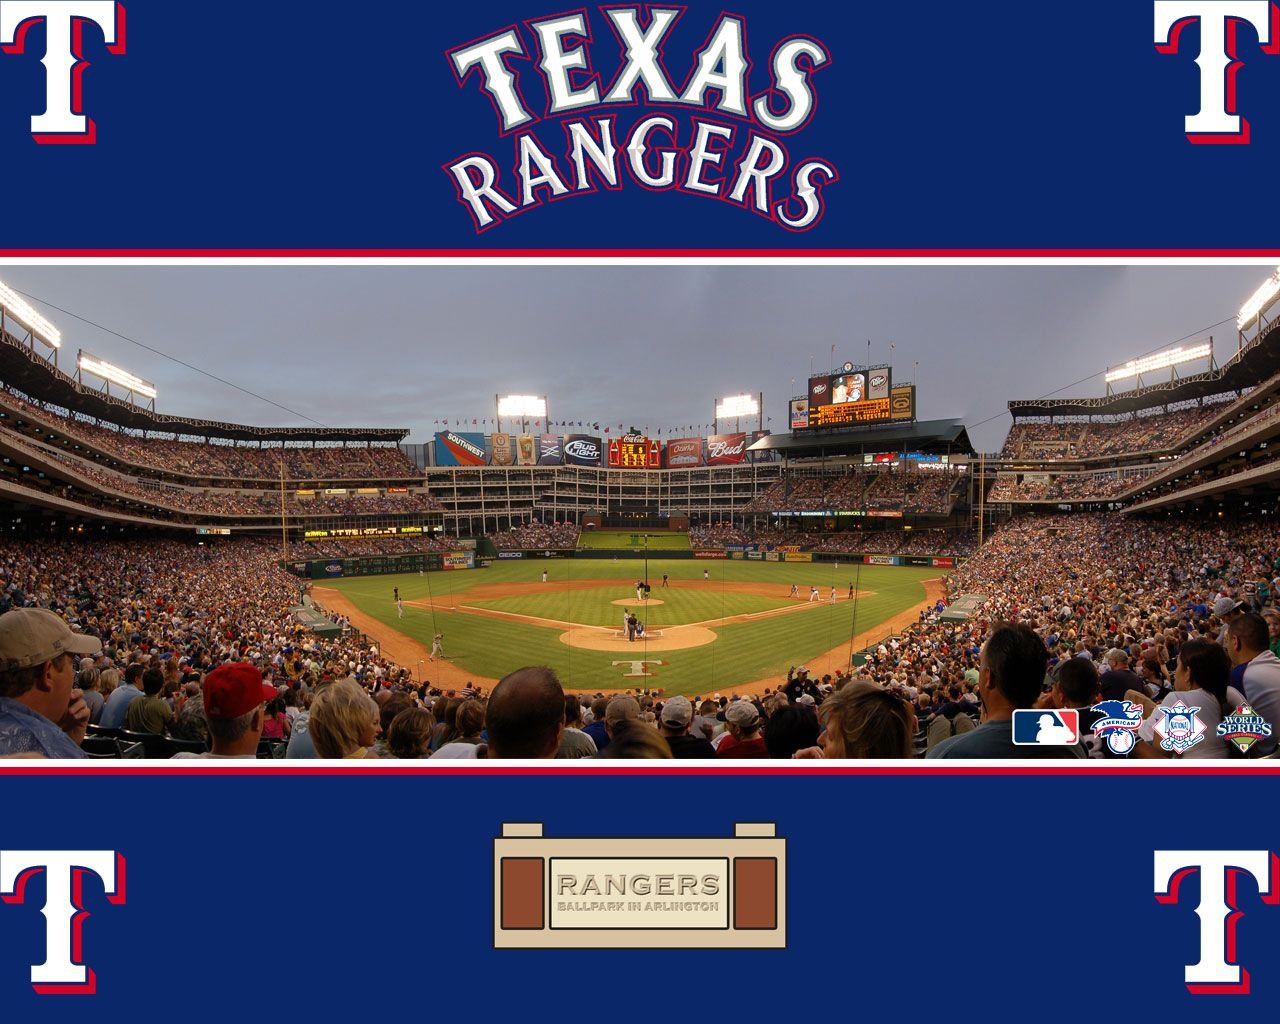 Texas Rangers Game List Of Promotions Here Http Texas Rangers Mlb Com Schedule Promotions Jsp C Id Texas Rangers Texas Rangers Wallpaper Texas Rangers Game